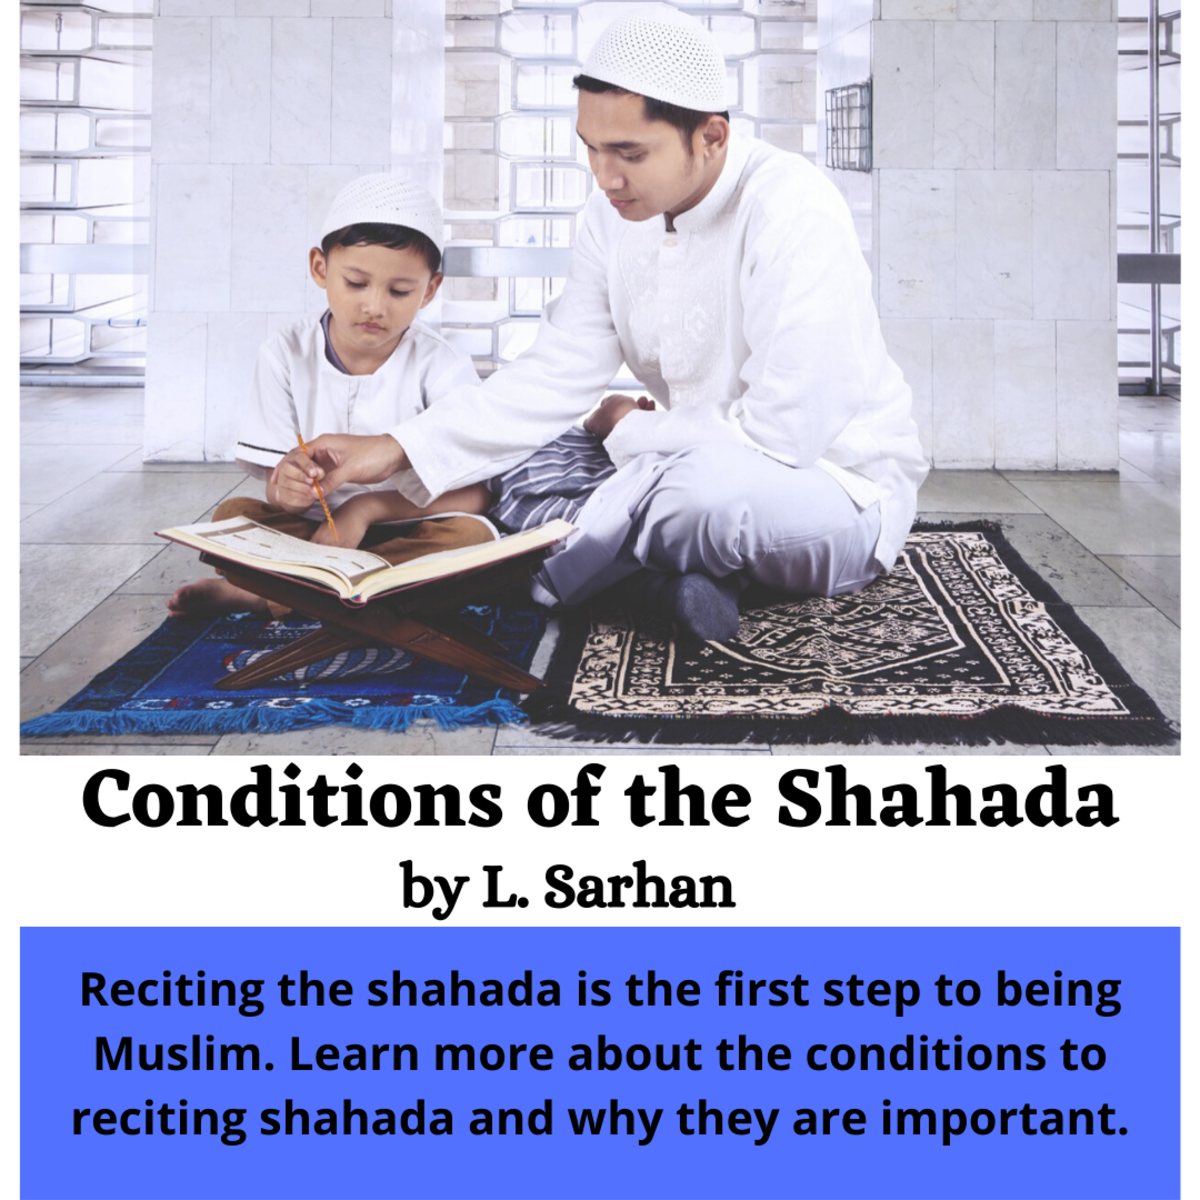 Conditions of the Shahada